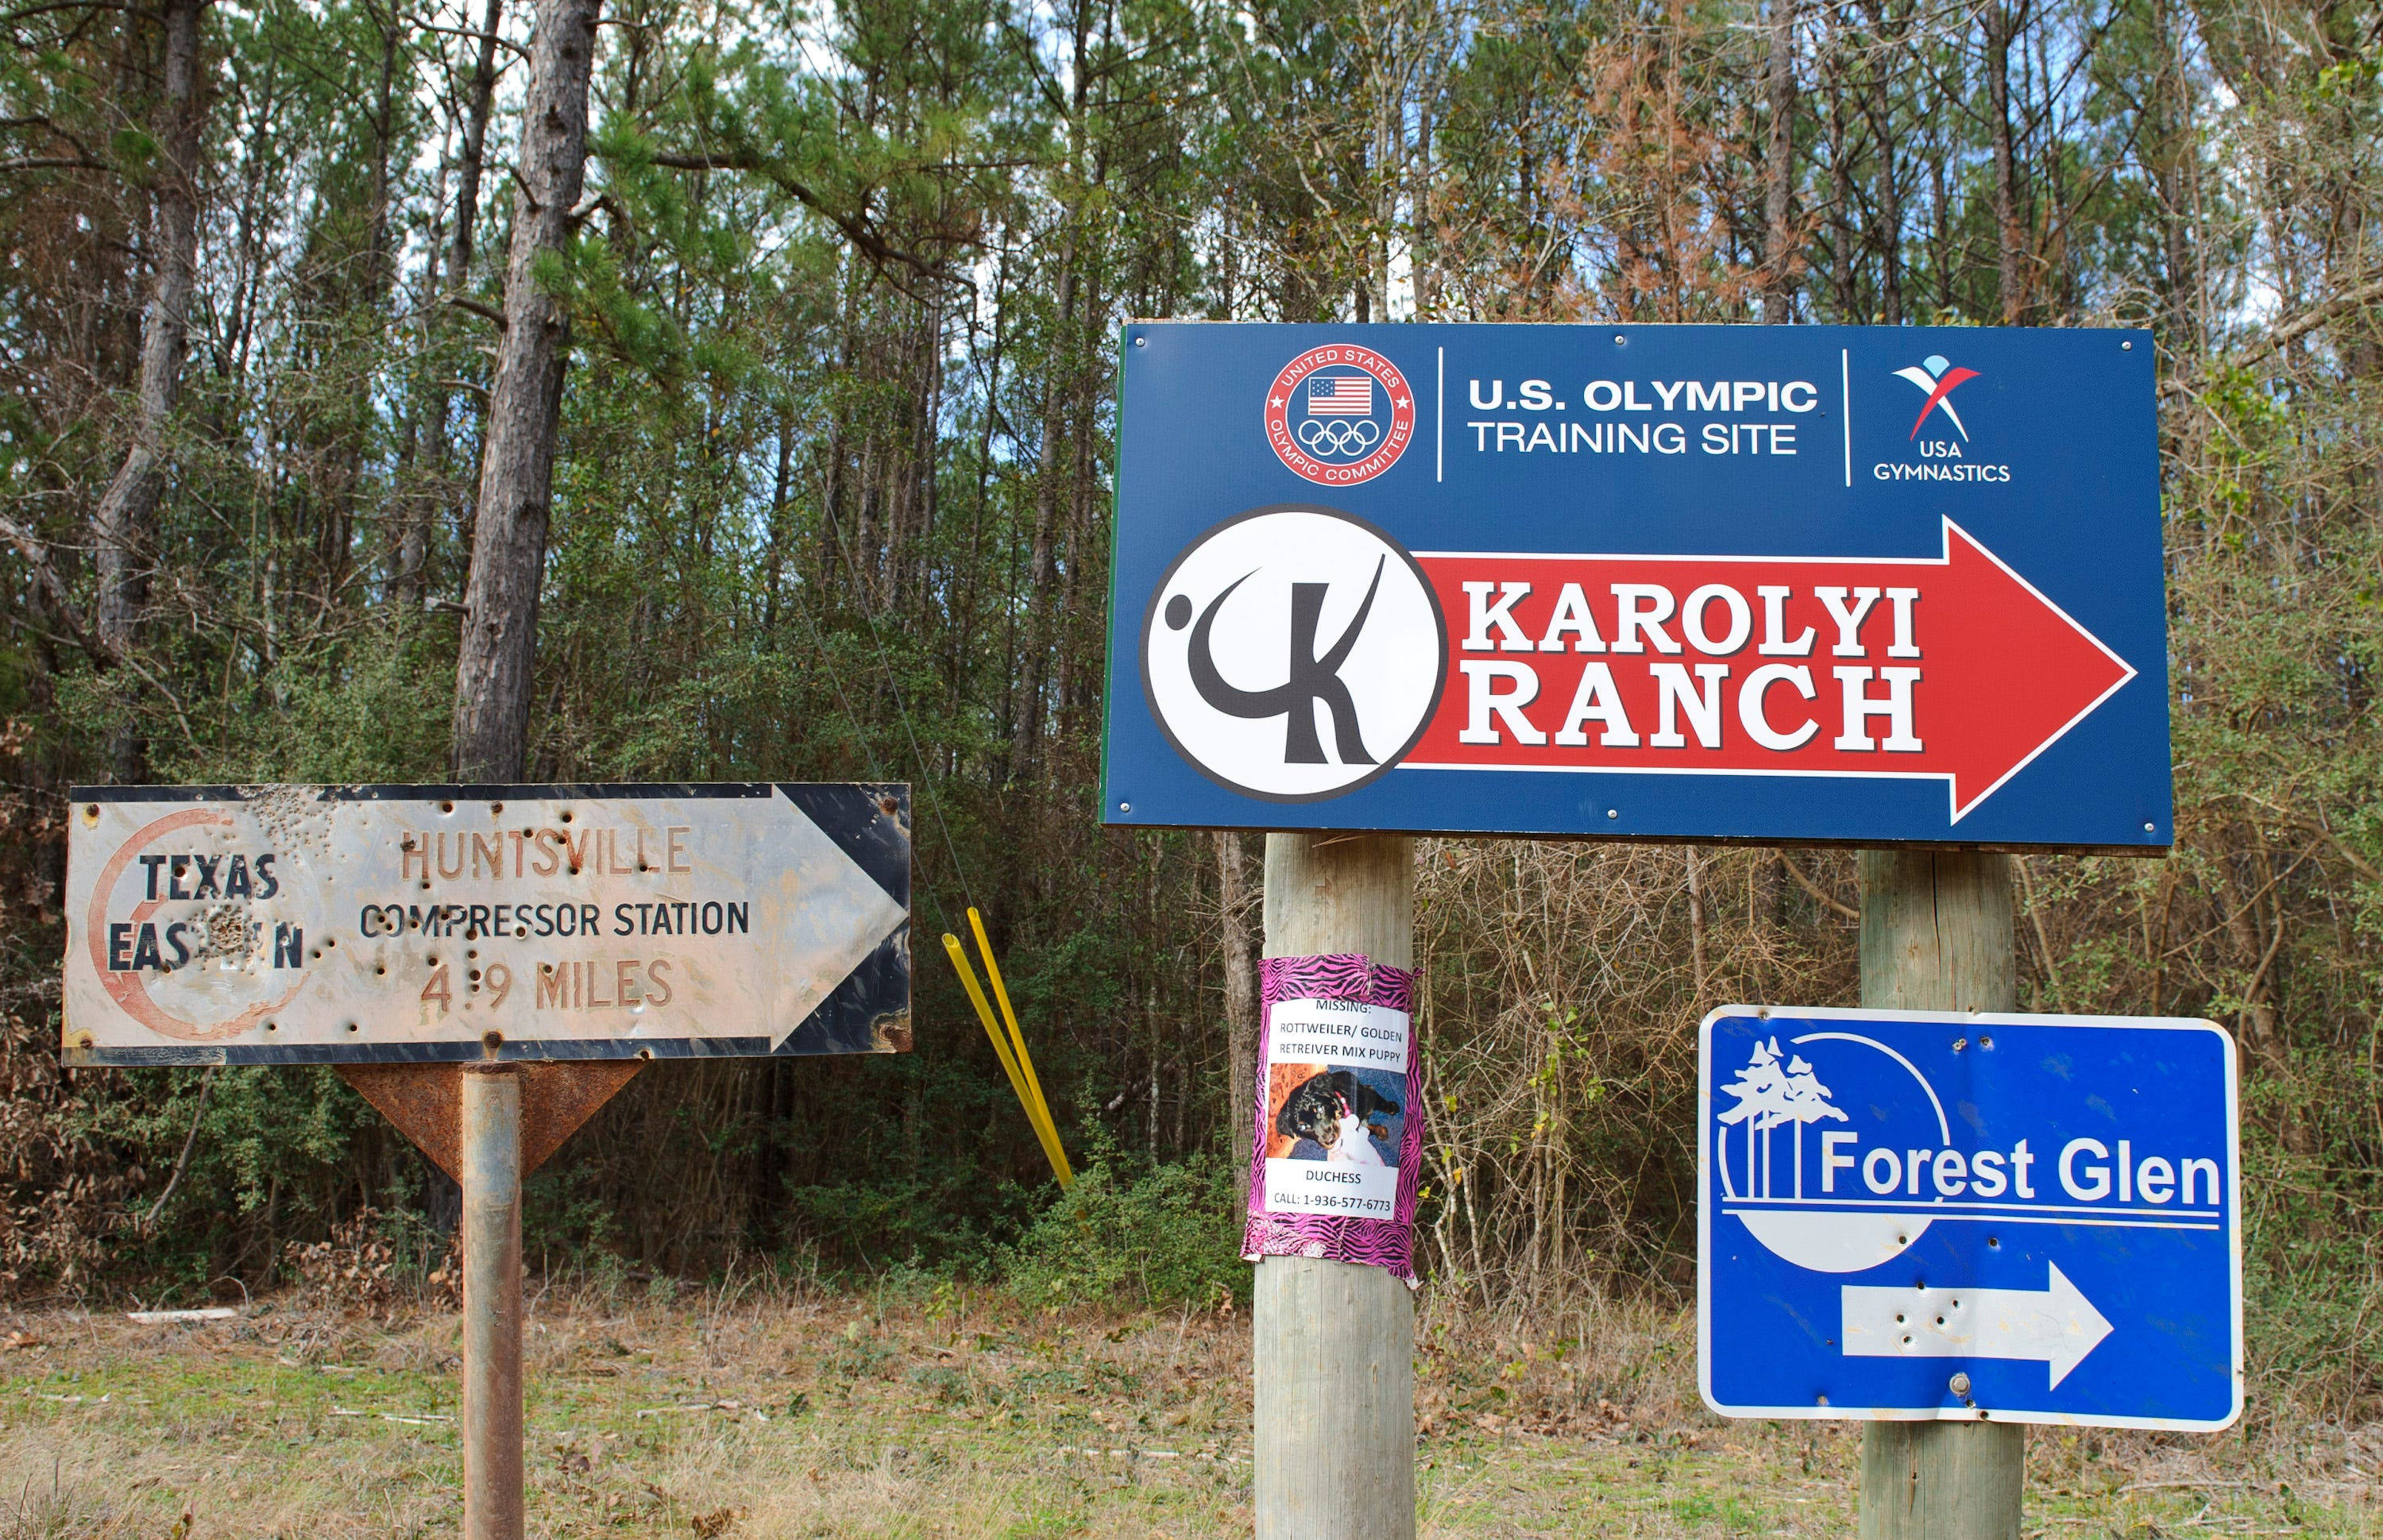 USA Gymnastics announces it's dropping Karolyi ranch for training camps amid criticism